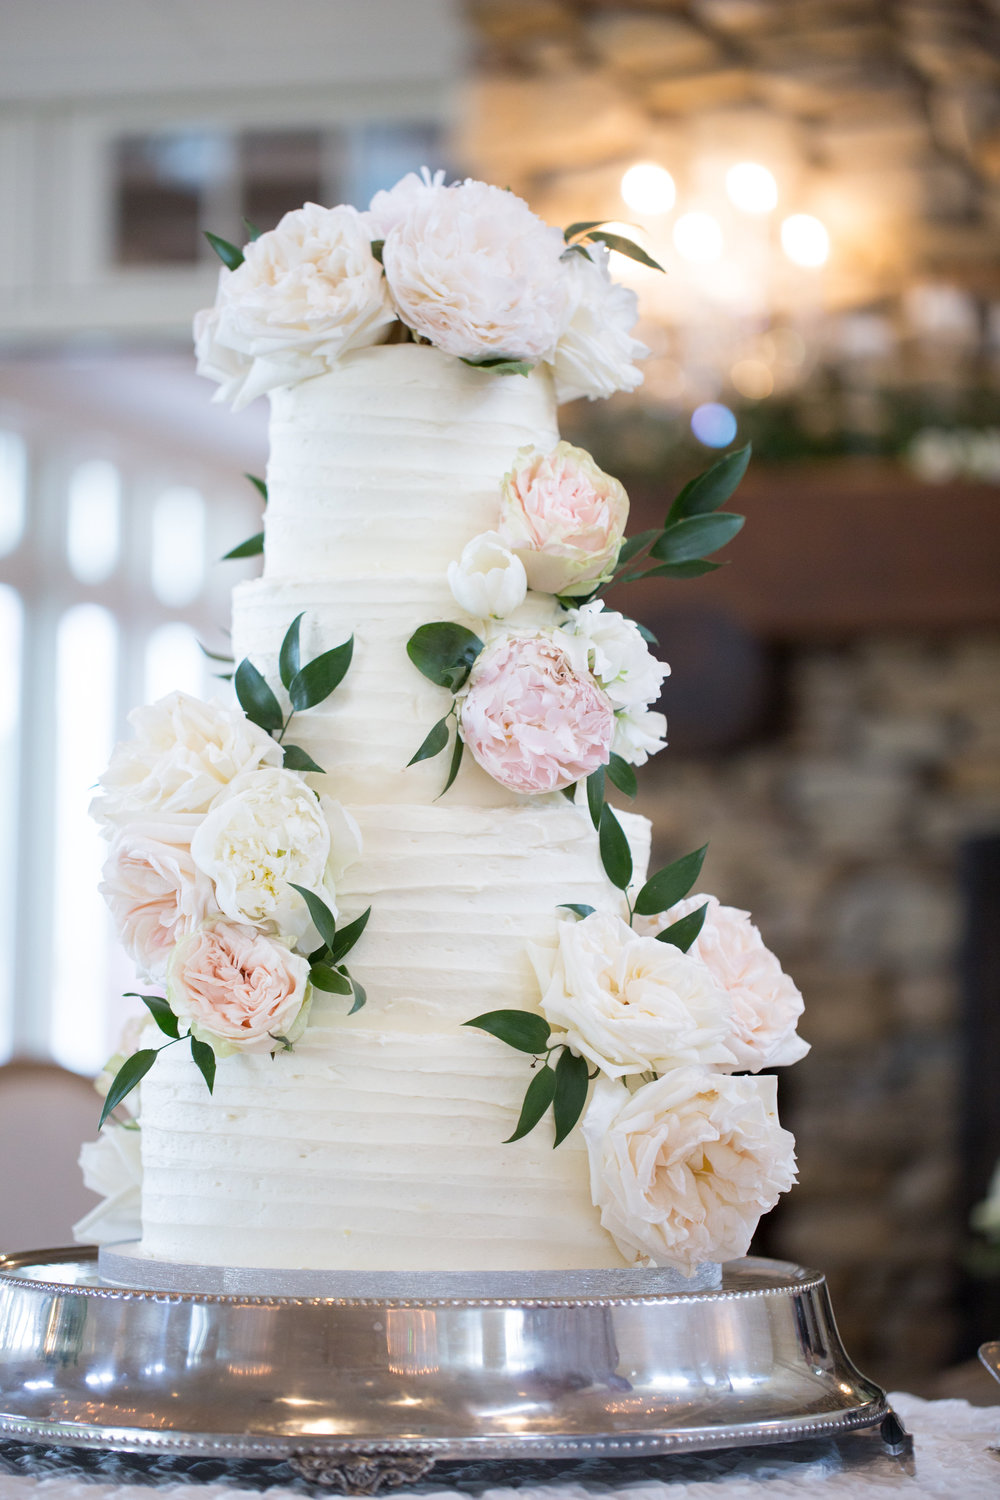 Charlotte North Carolina Wedding, Trump National Golf Course Wedding, Lakeside wedding, Blush Ivory and Greenery Wedding Design, The Graceful Host, Classic Wedding Cake, Wedding Cake Flowers, Elegant Wedding Cake, Wedding Cake Design, Peony Wedding, Spring Wedding